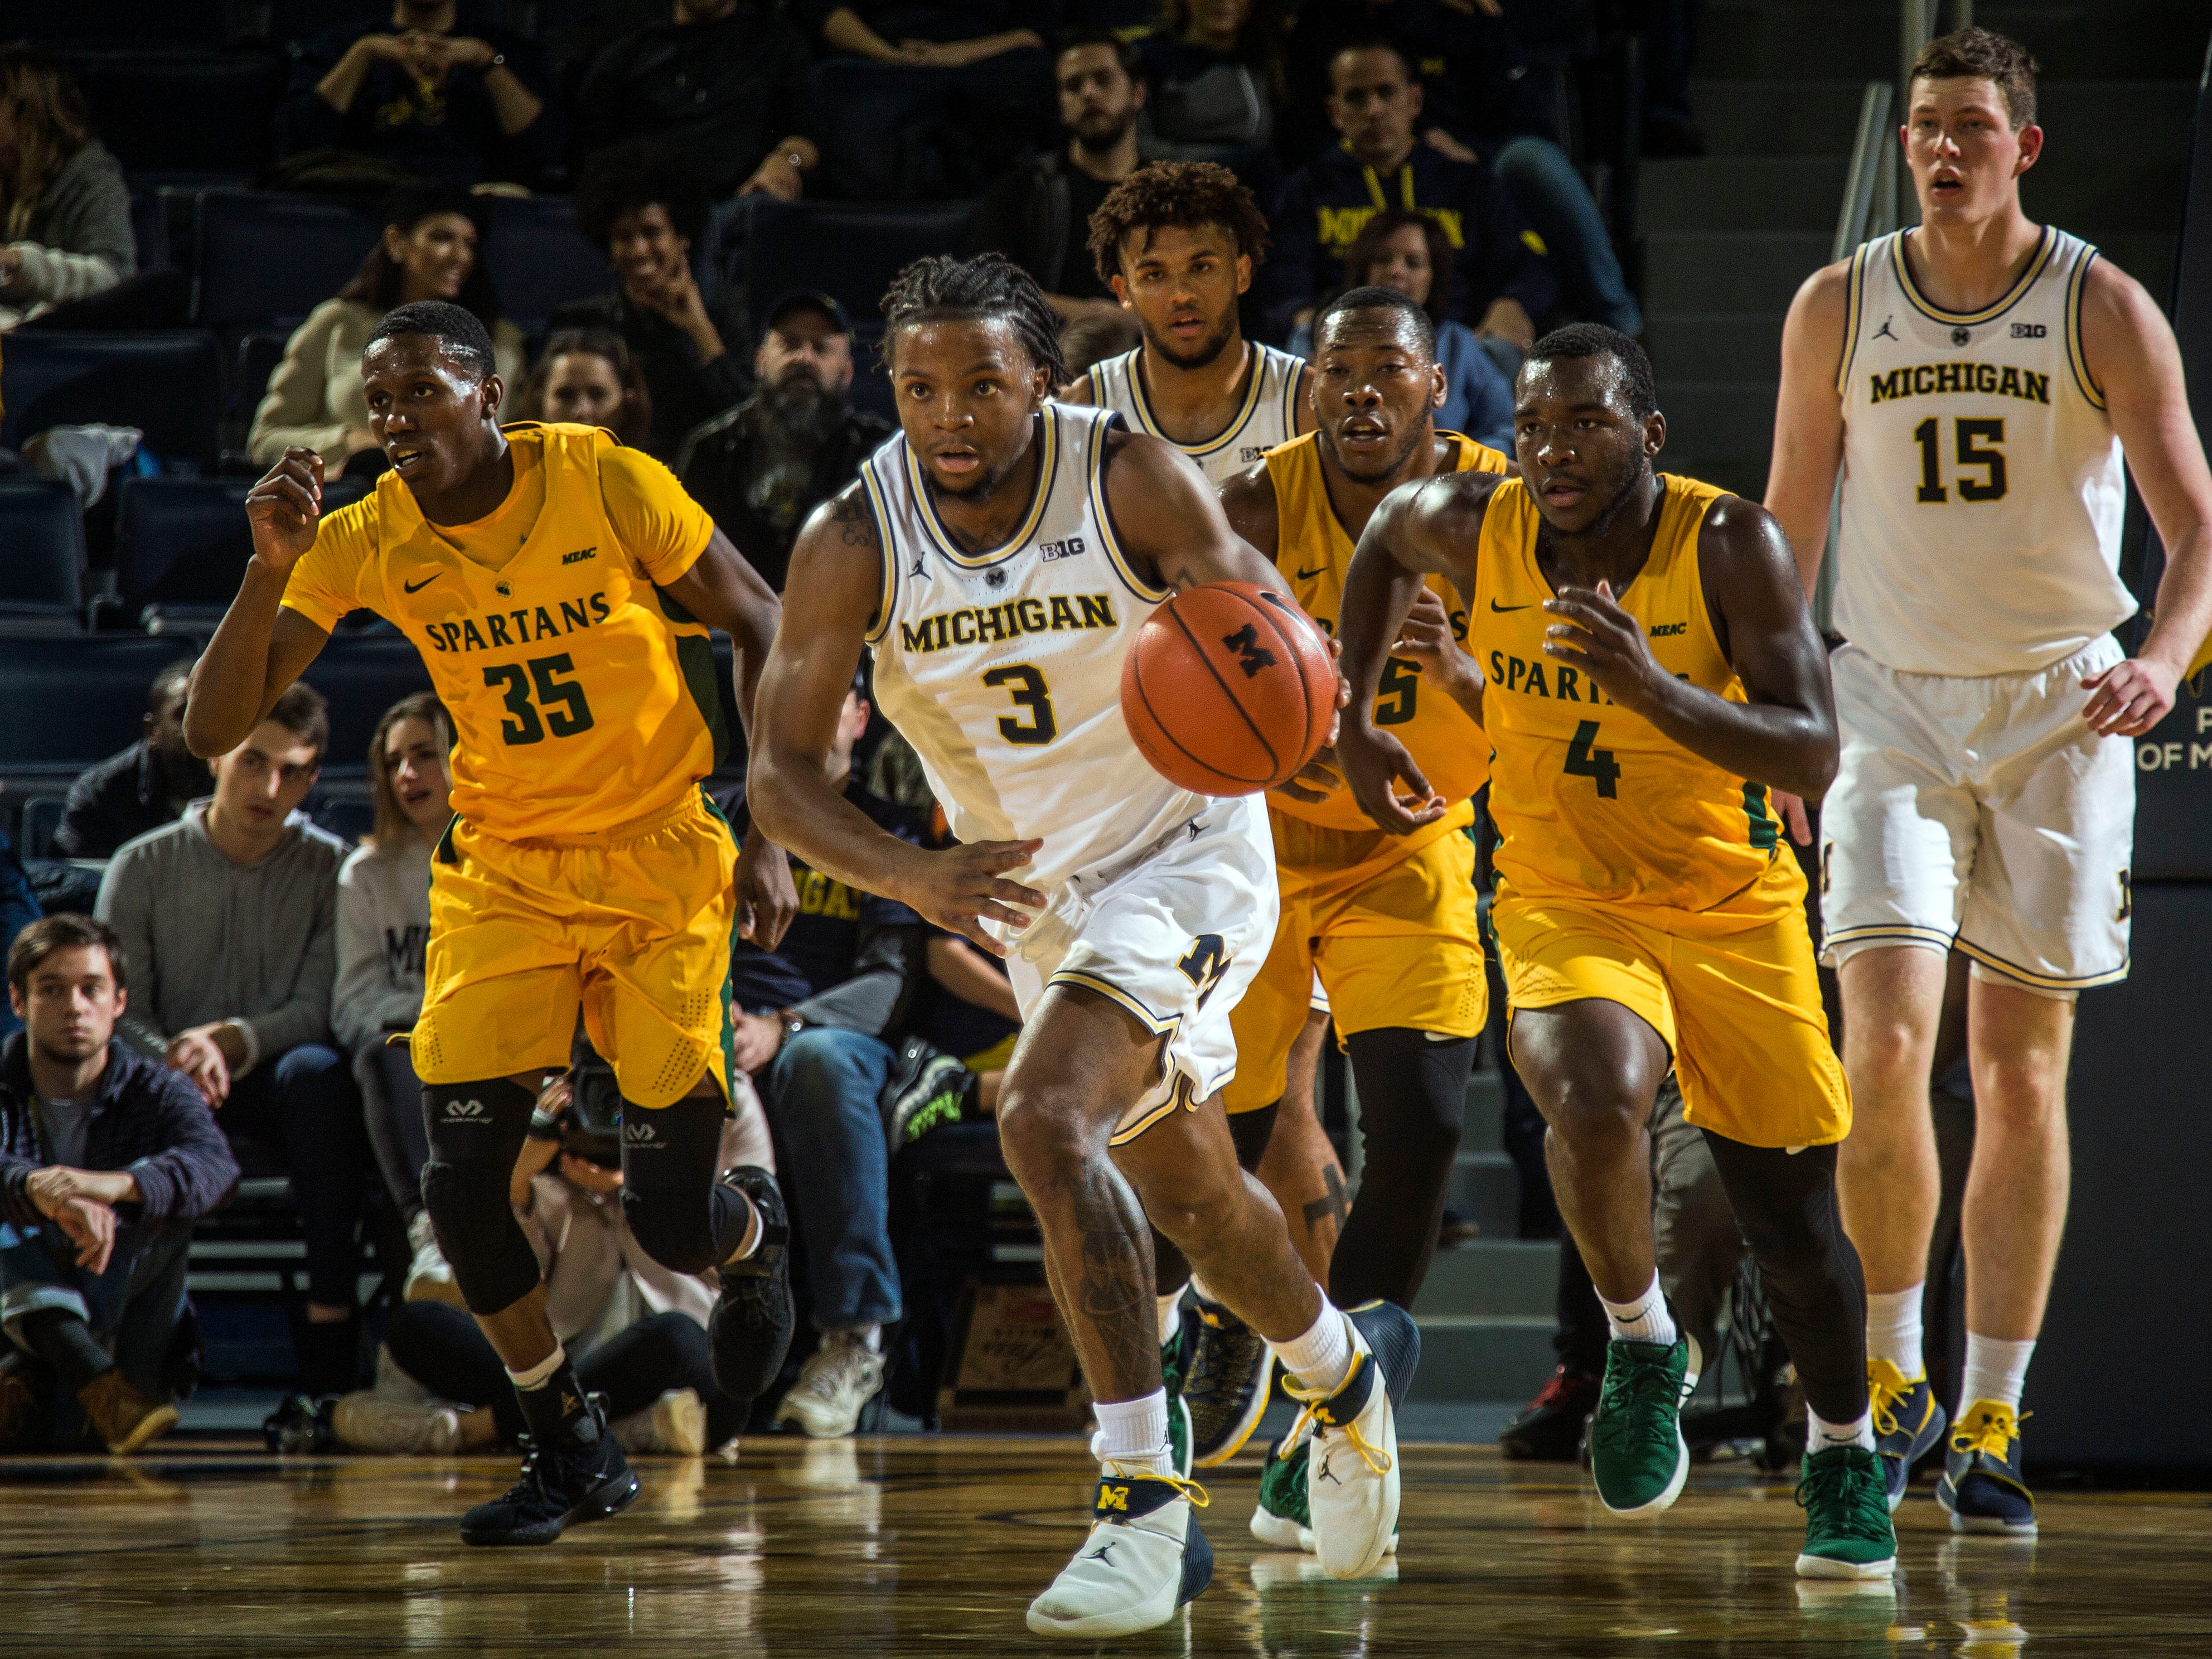 Michigan guard Zavier Simpson (3) dribbles ahead of Norfolk State guard Derrik Jamerson Jr. (35) and guard Joe Bryant Jr. (4) in the first half of an NCAA college basketball game at Crisler Center in Ann Arbor, Mich., Tuesday, Nov. 6, 2018. Michigan won 63-44.